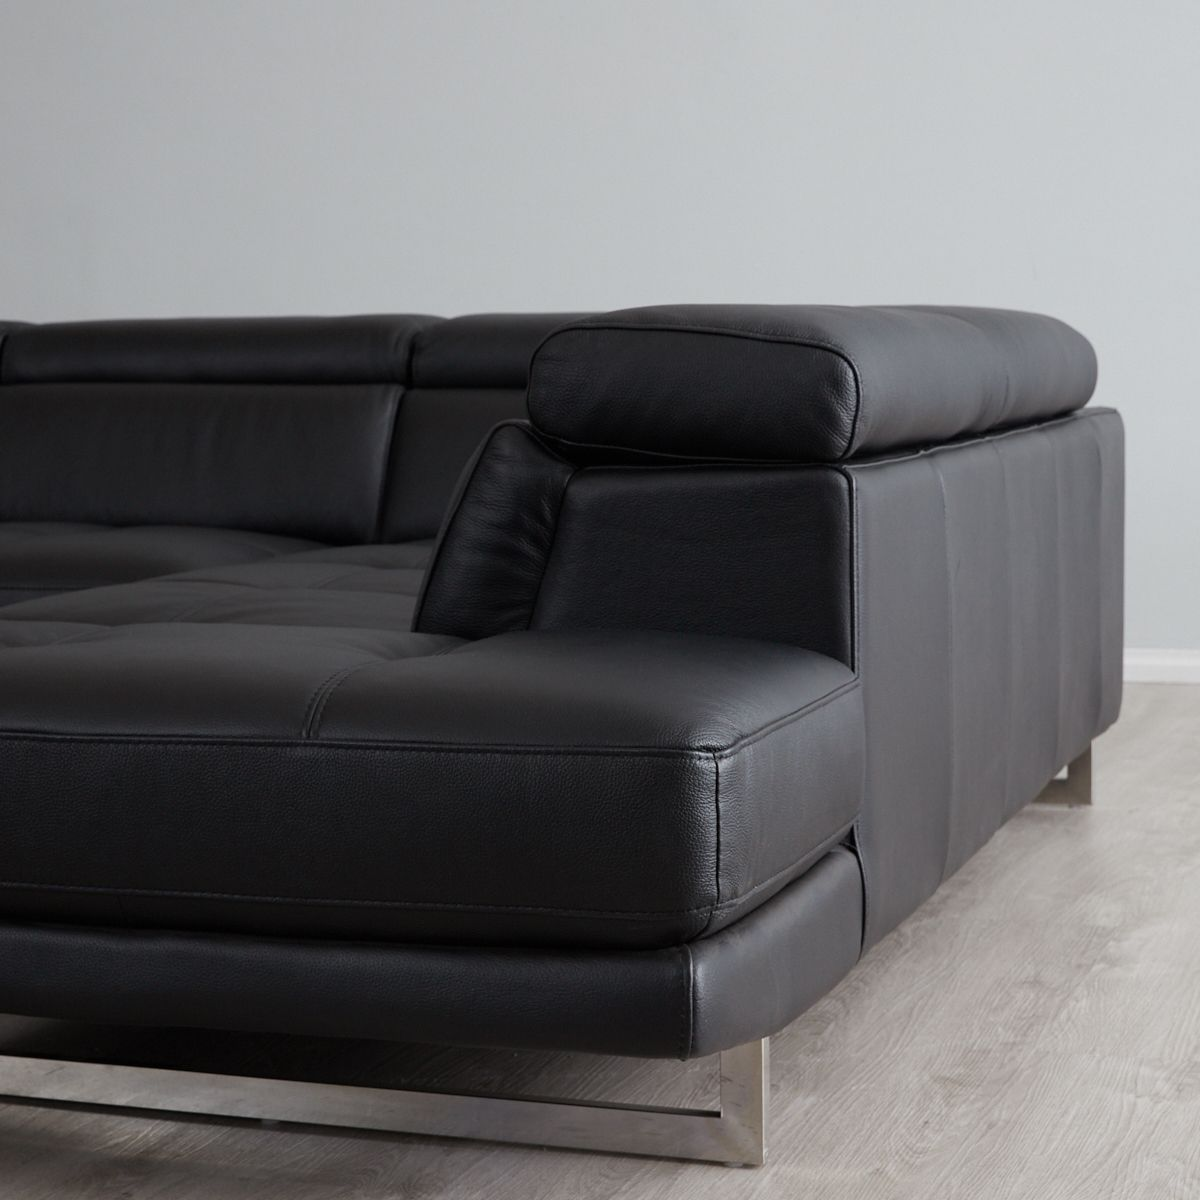 Aster Modular Right Chaise Lounge